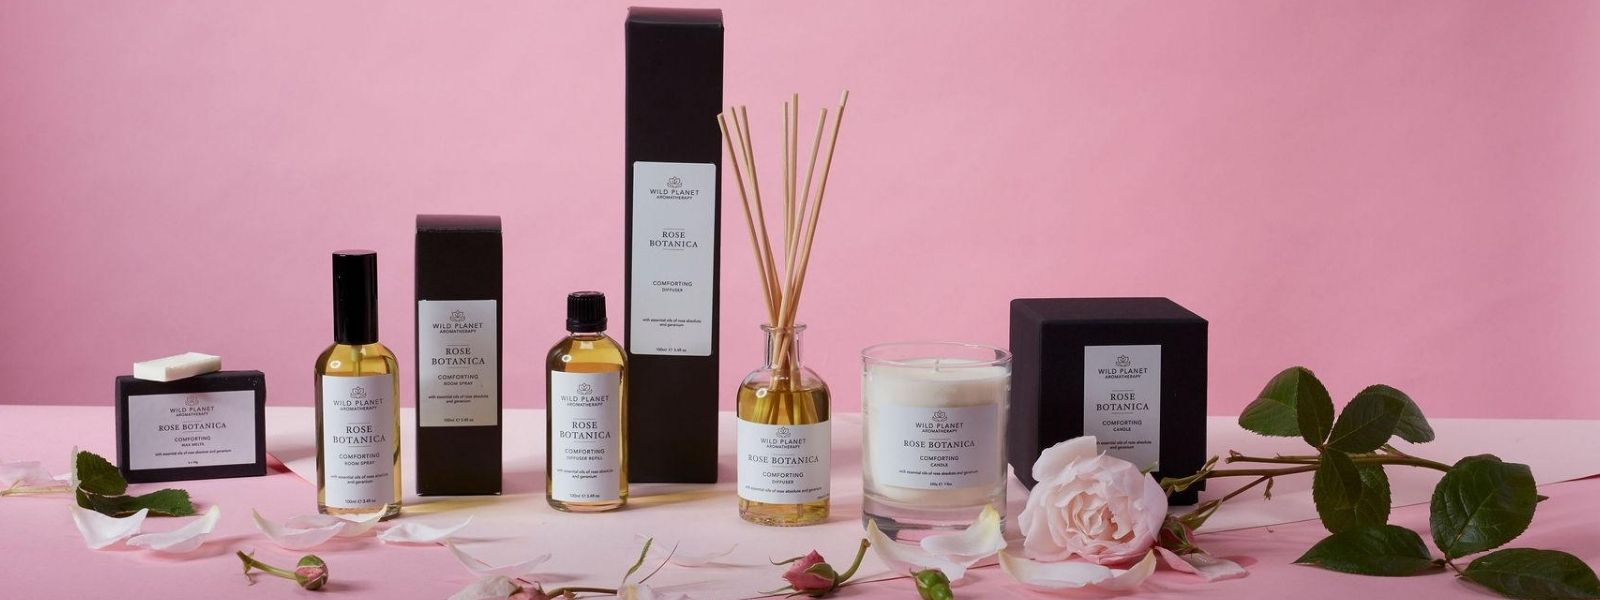 Rose Botanica Reed Diffuser, Room Spray, candle and wax melts  by Wild Planet Aromatherapy next to fresh rose buds and rose petals on pink background